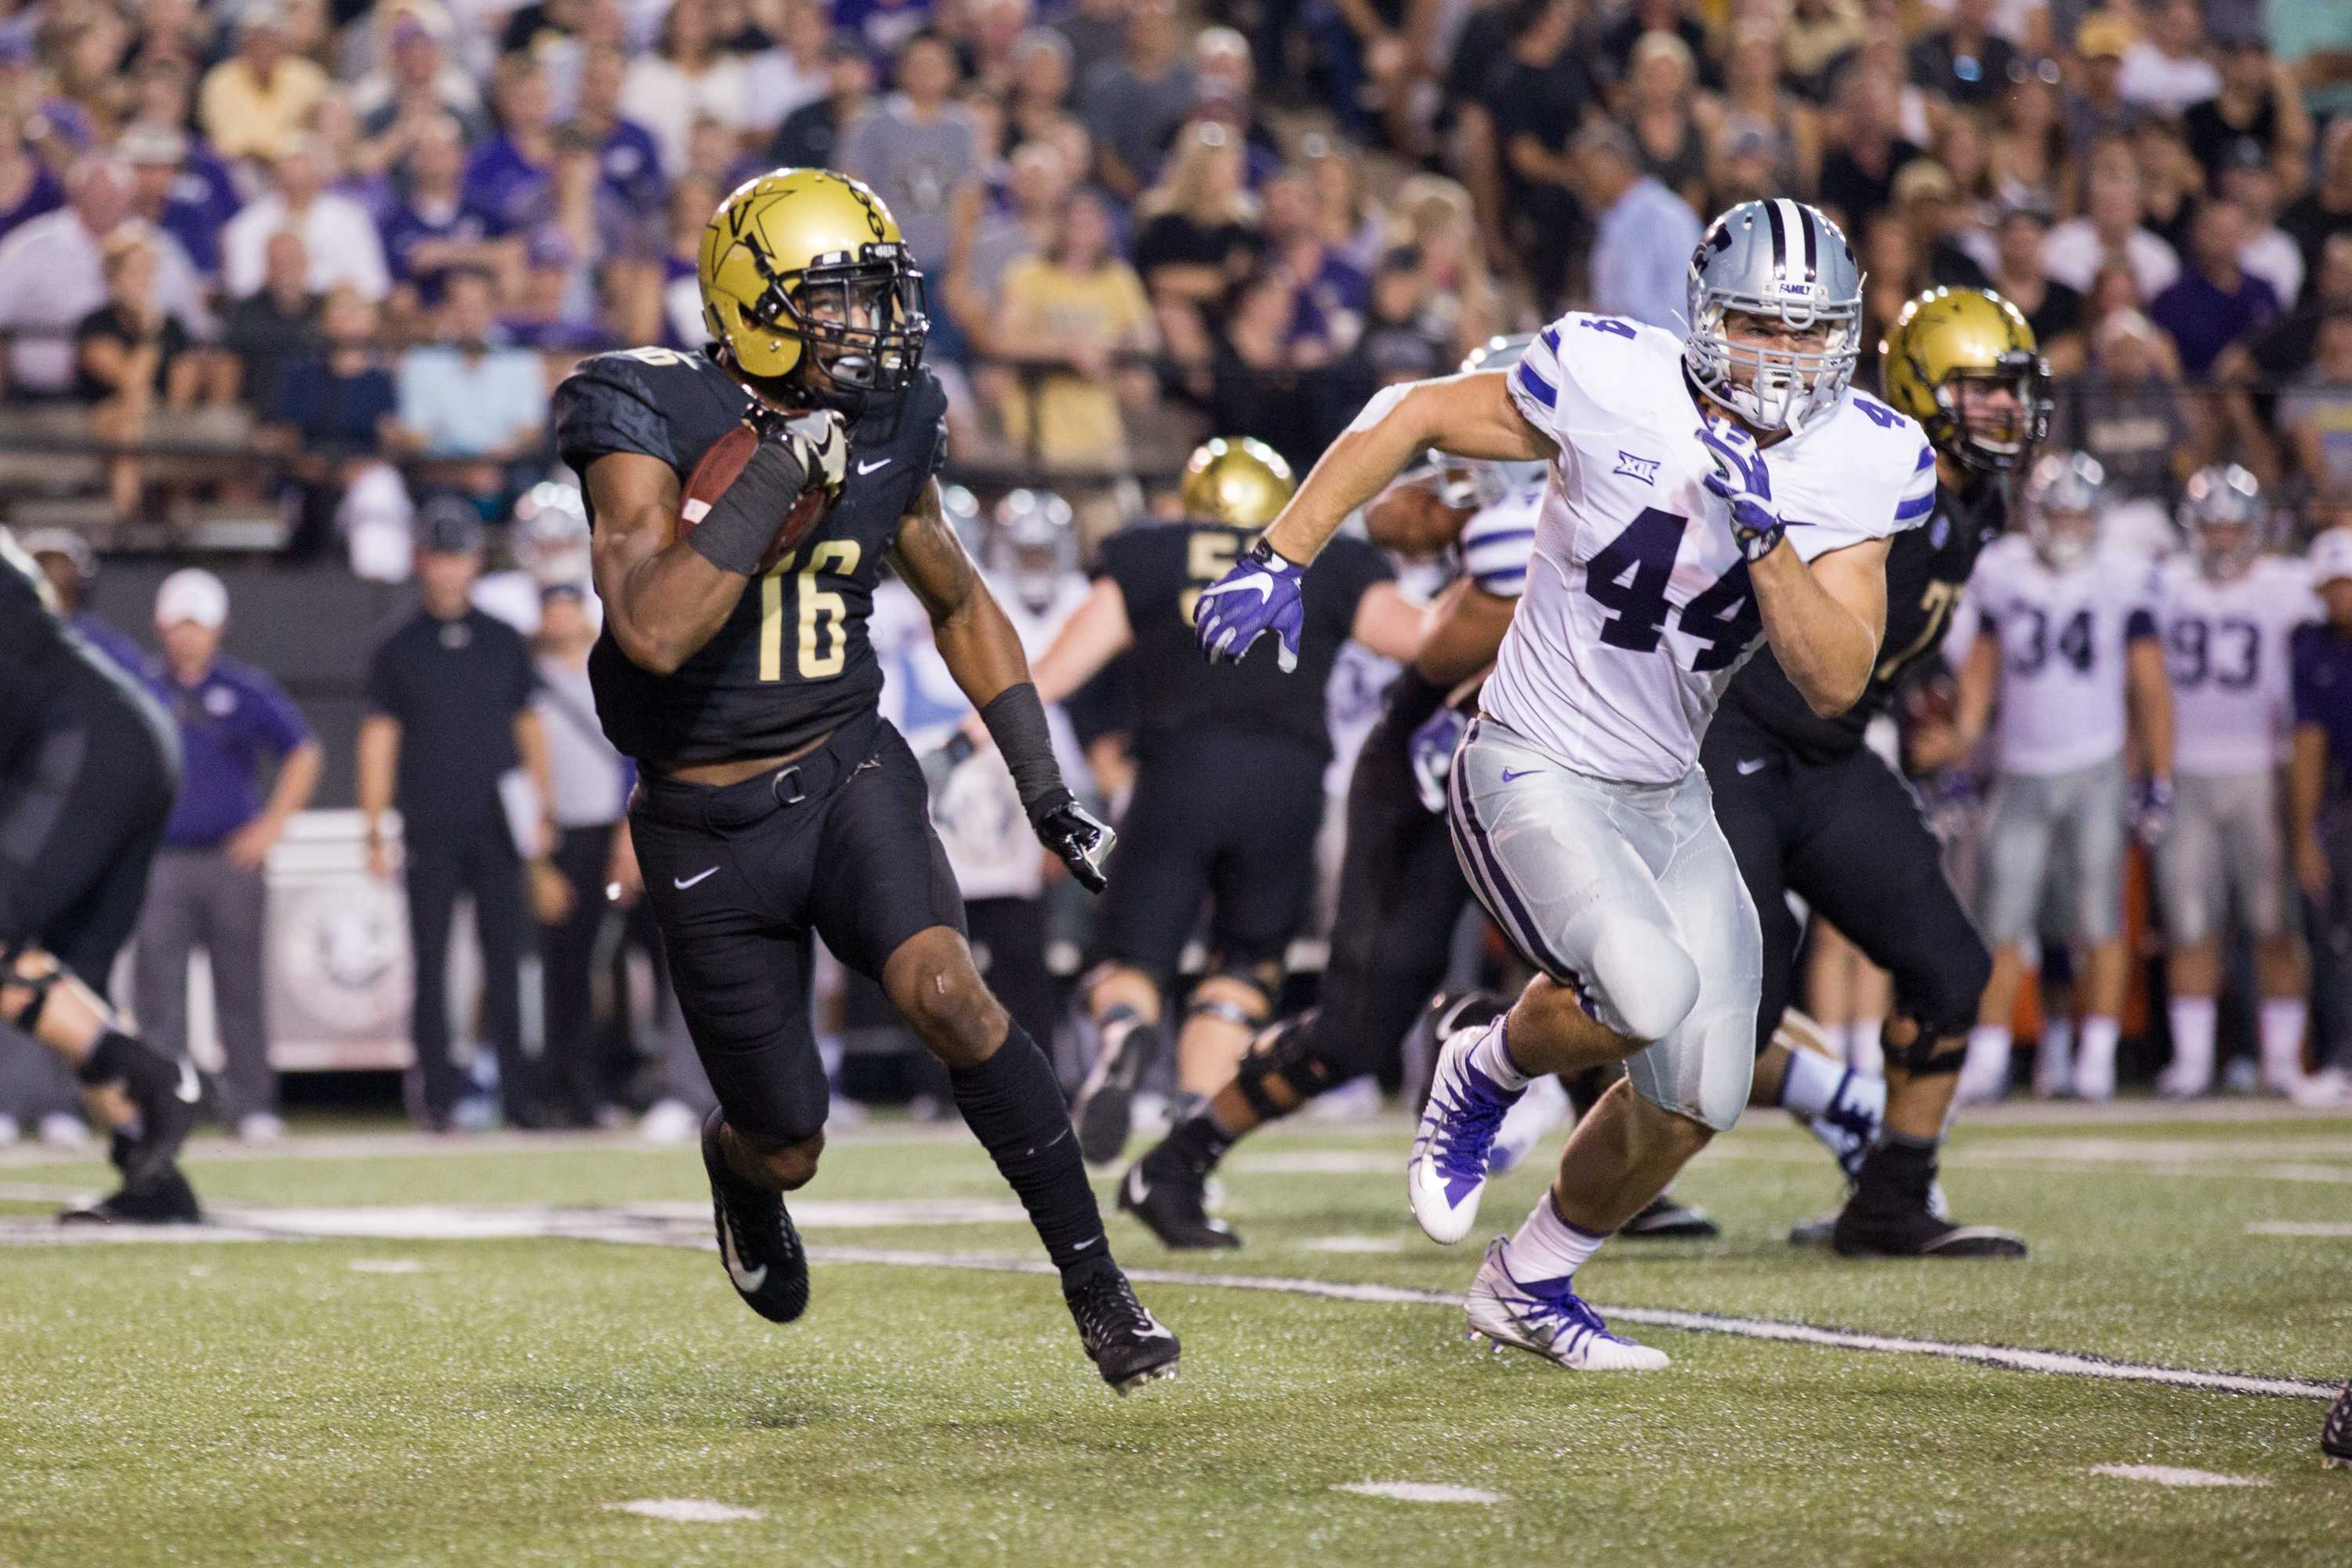 Vanderbilt upsets No. 18 Kansas State in home grudge match